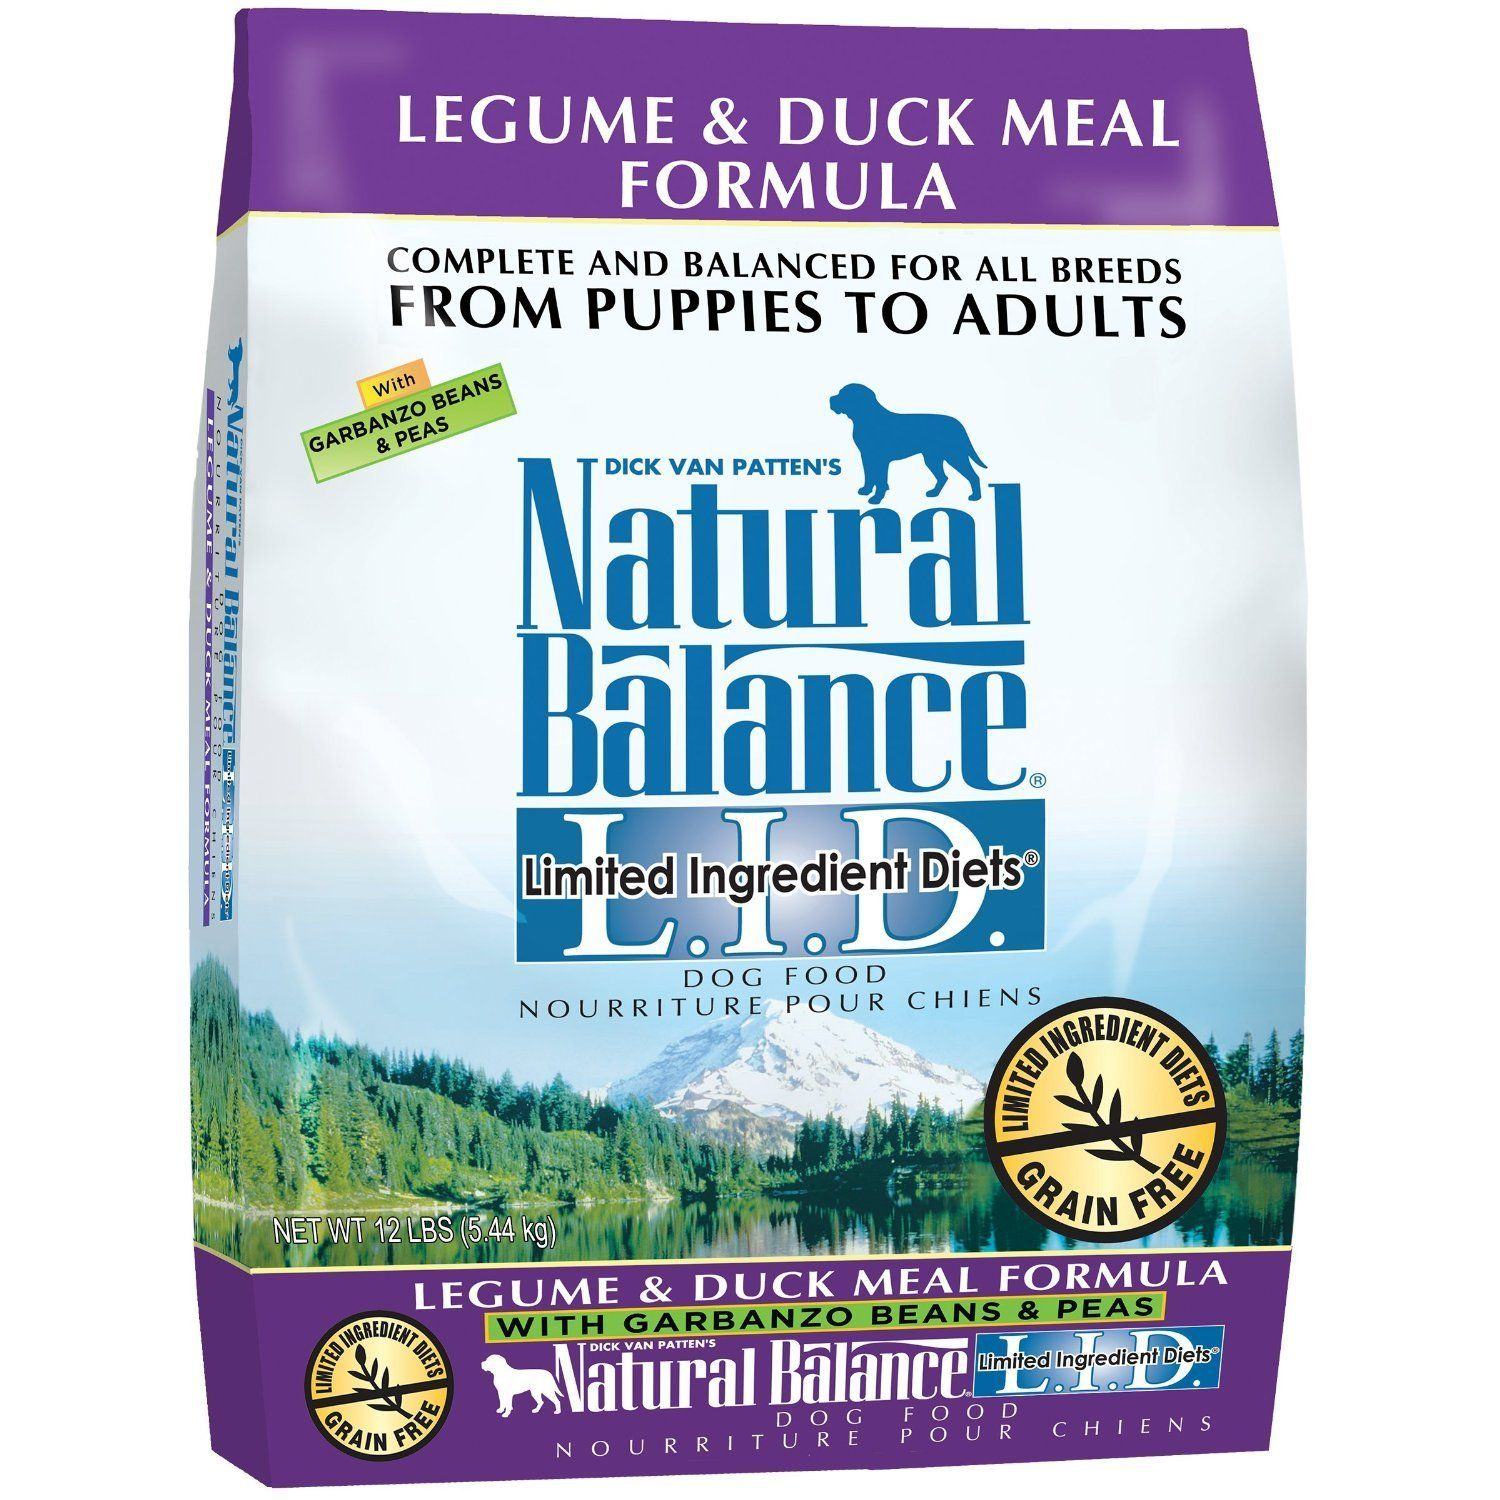 Natural Balance Limited Ingredient Diets Legume and Duck